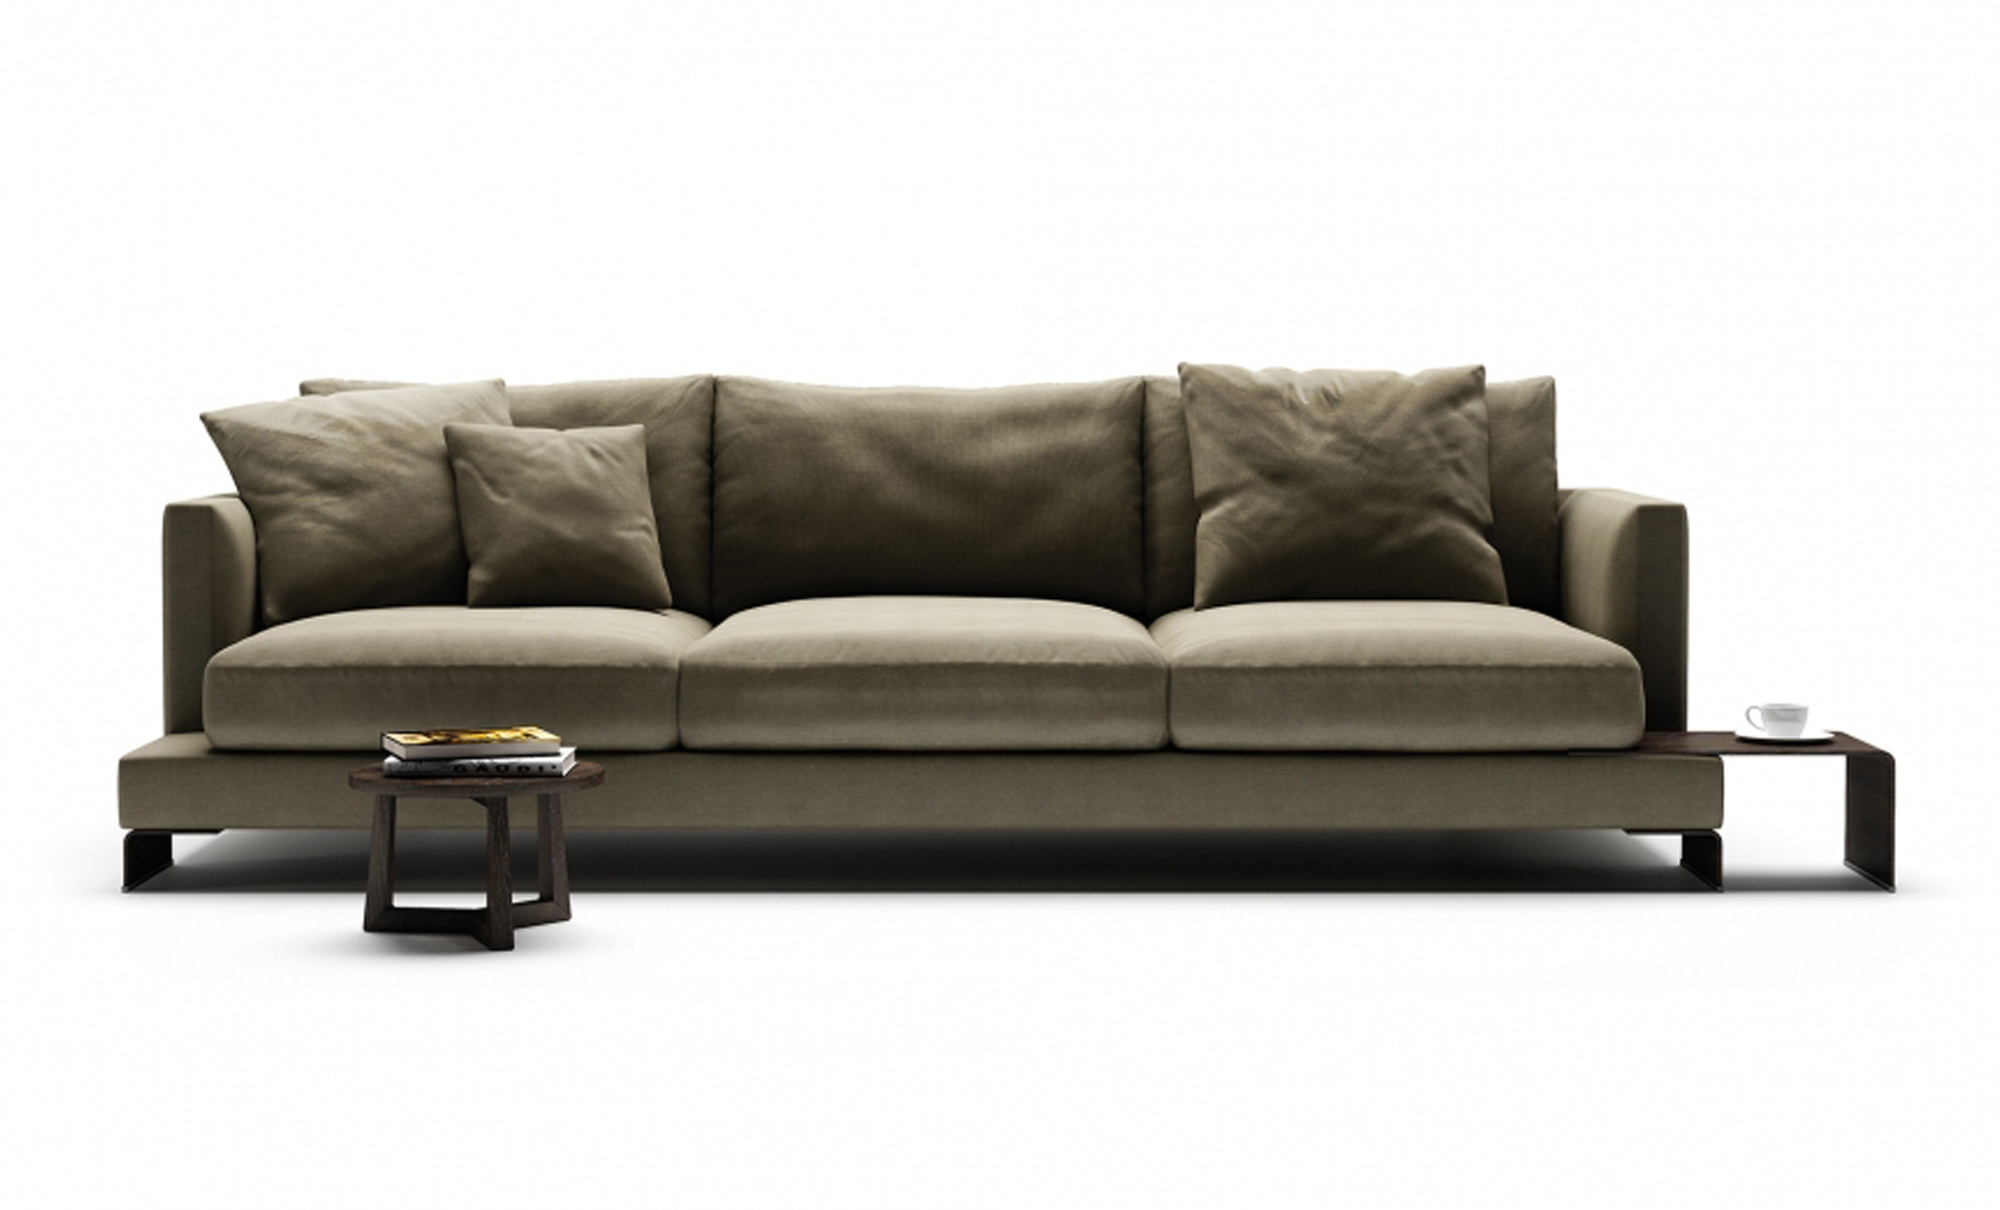 Long island sofas fanuli furniture Couches and loveseats